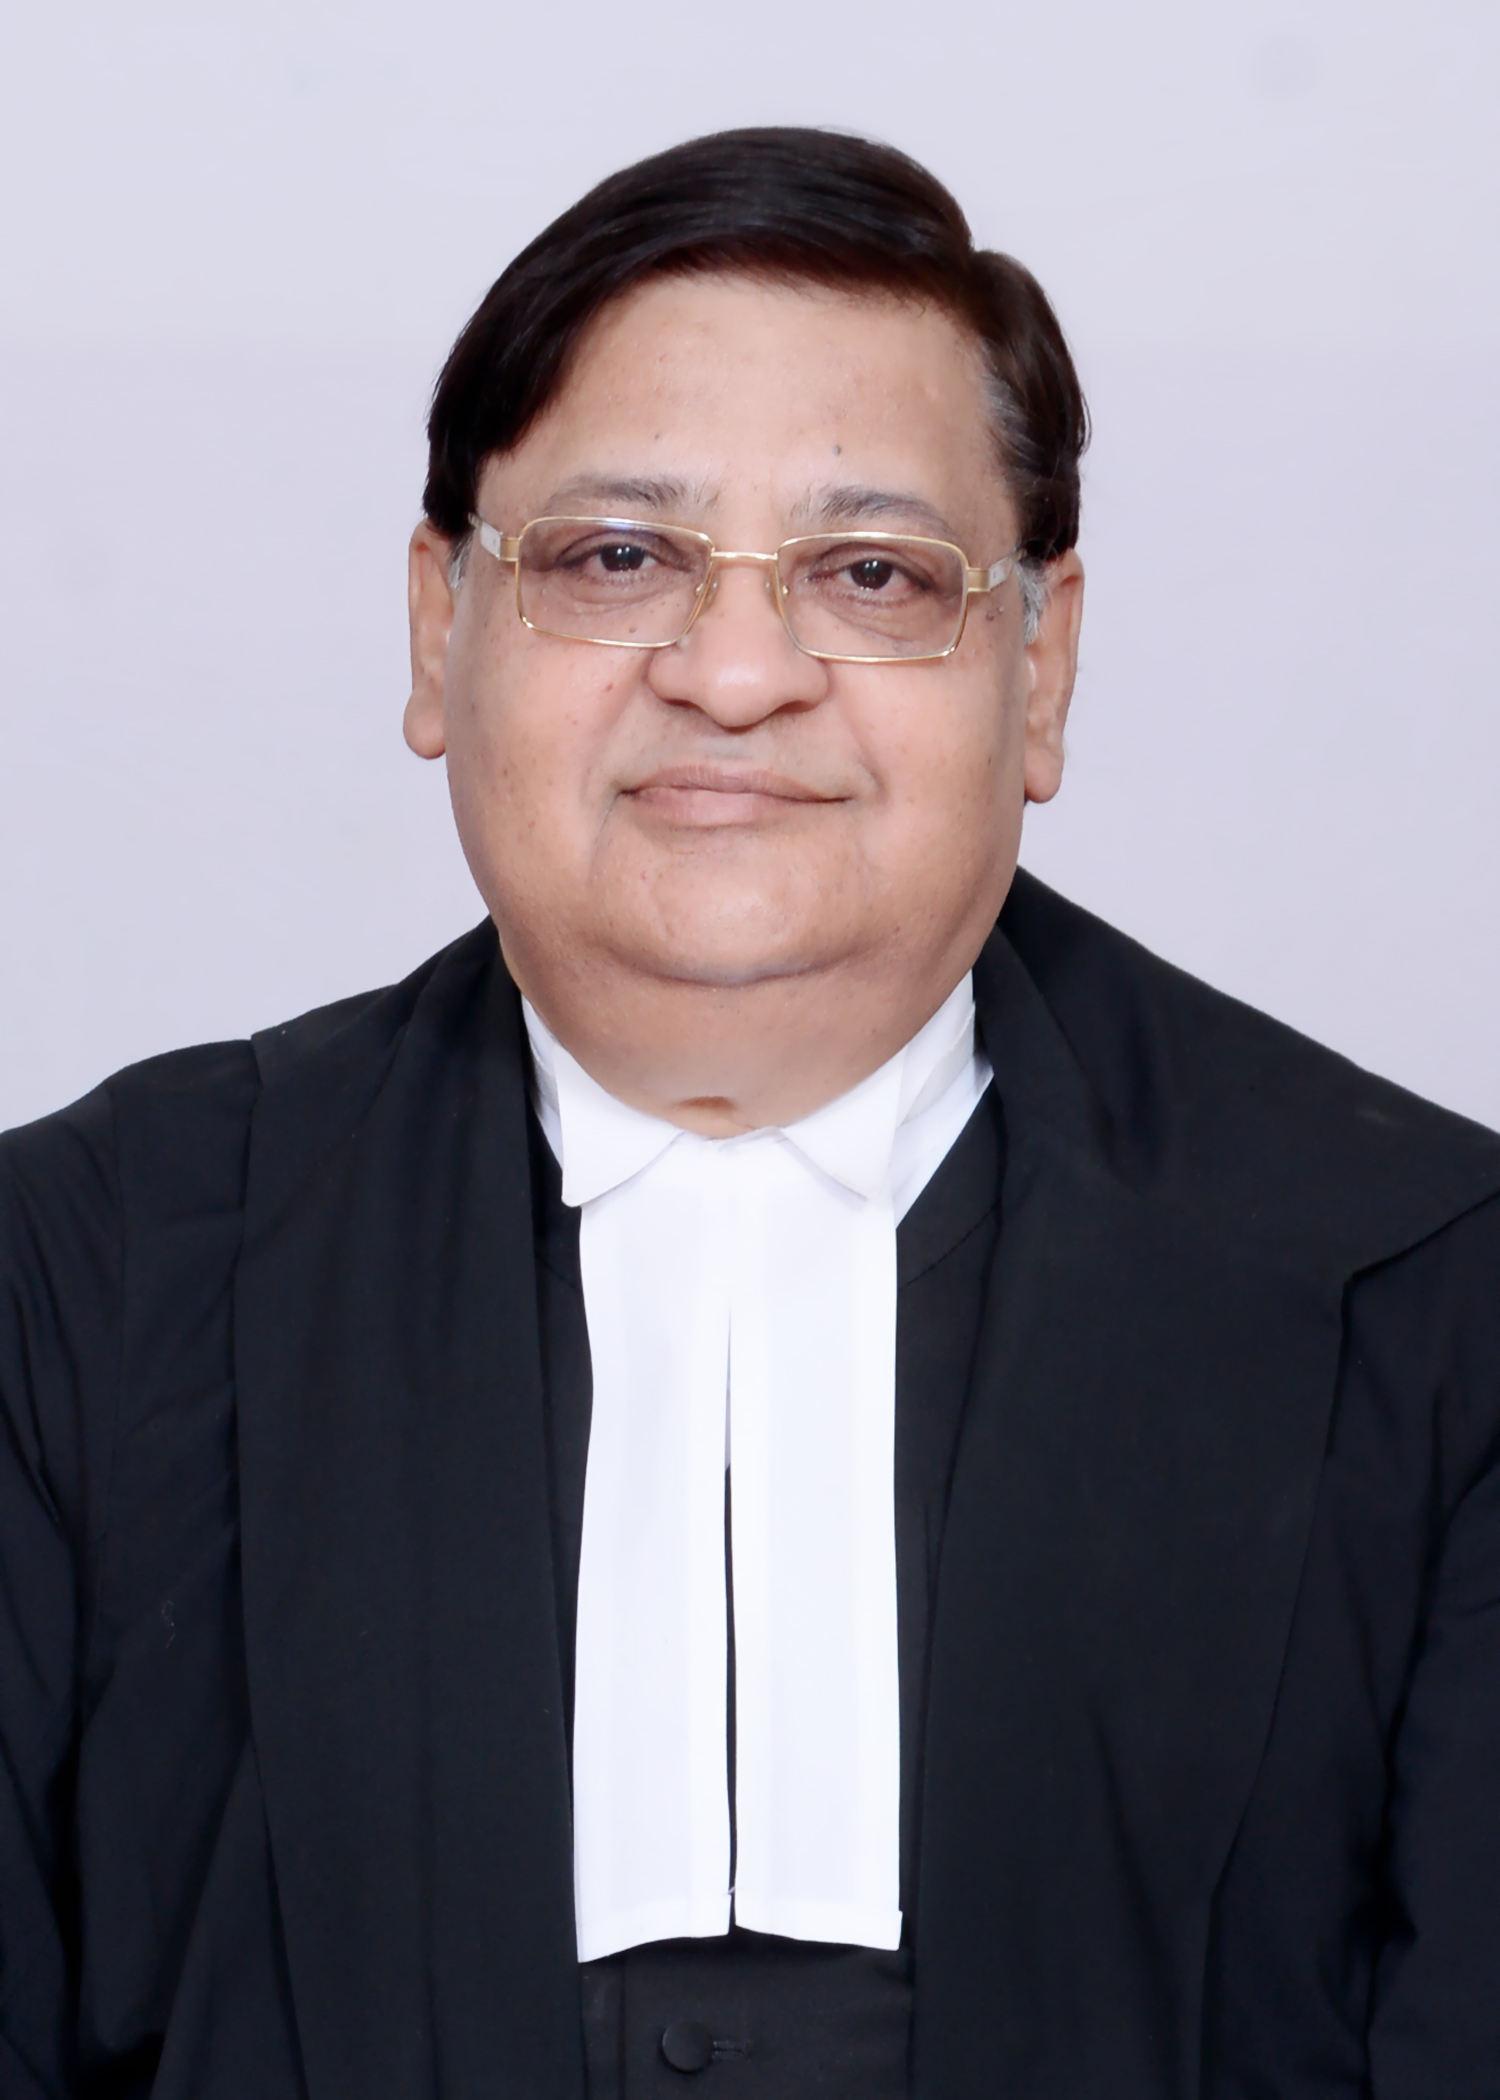 Shri Bharat Bhushan Vyas takes Oath of Office and Secrecy as Member, UPSC